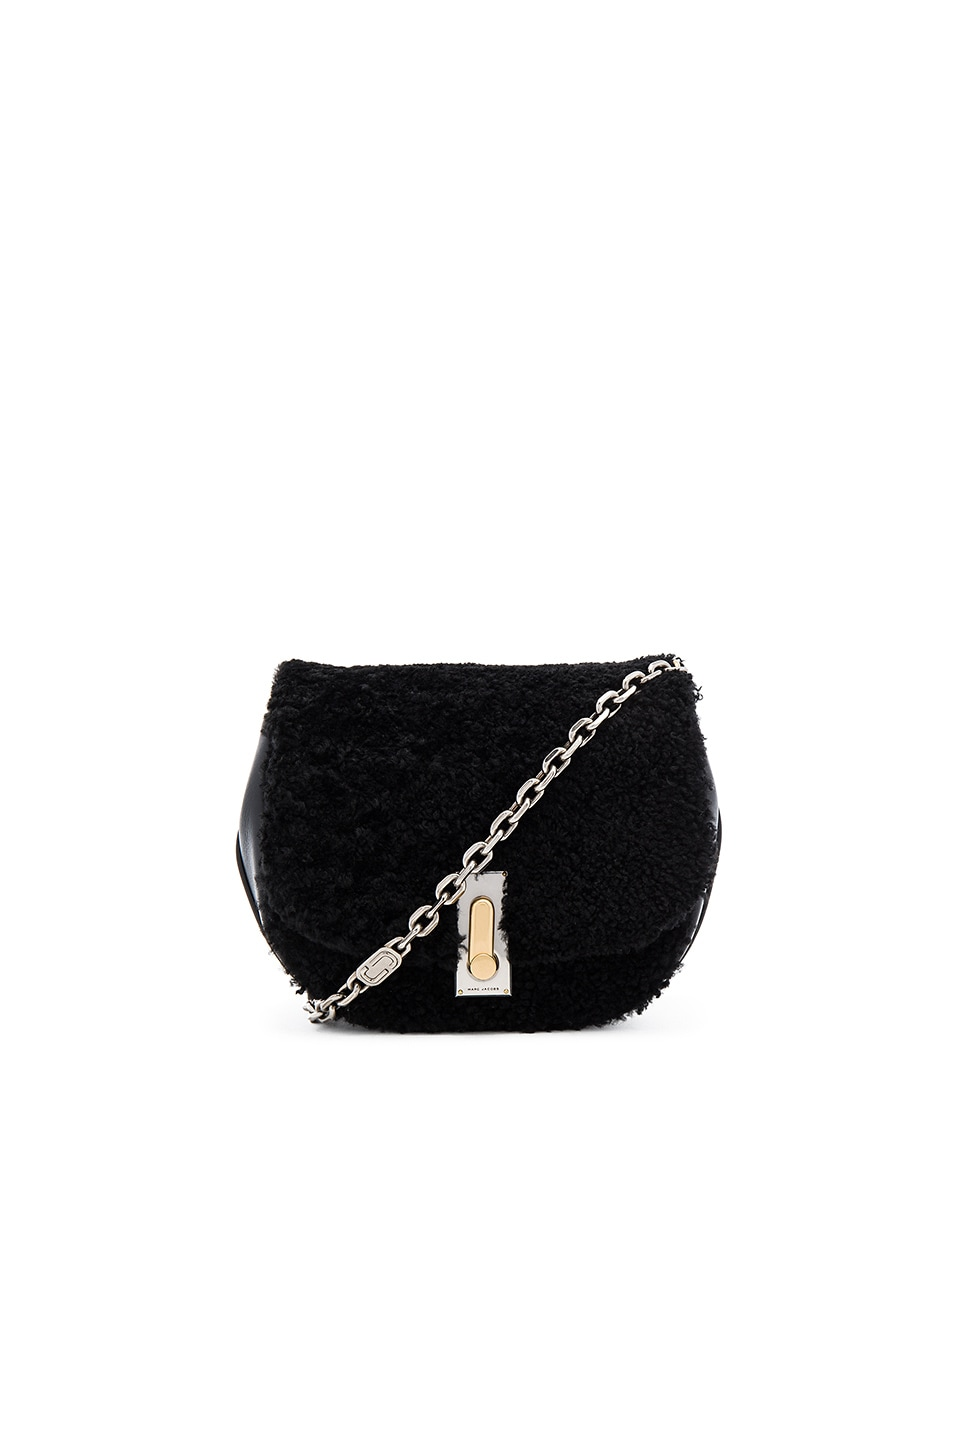 Marc Jacobs West End Shearling Jane Bag in Black